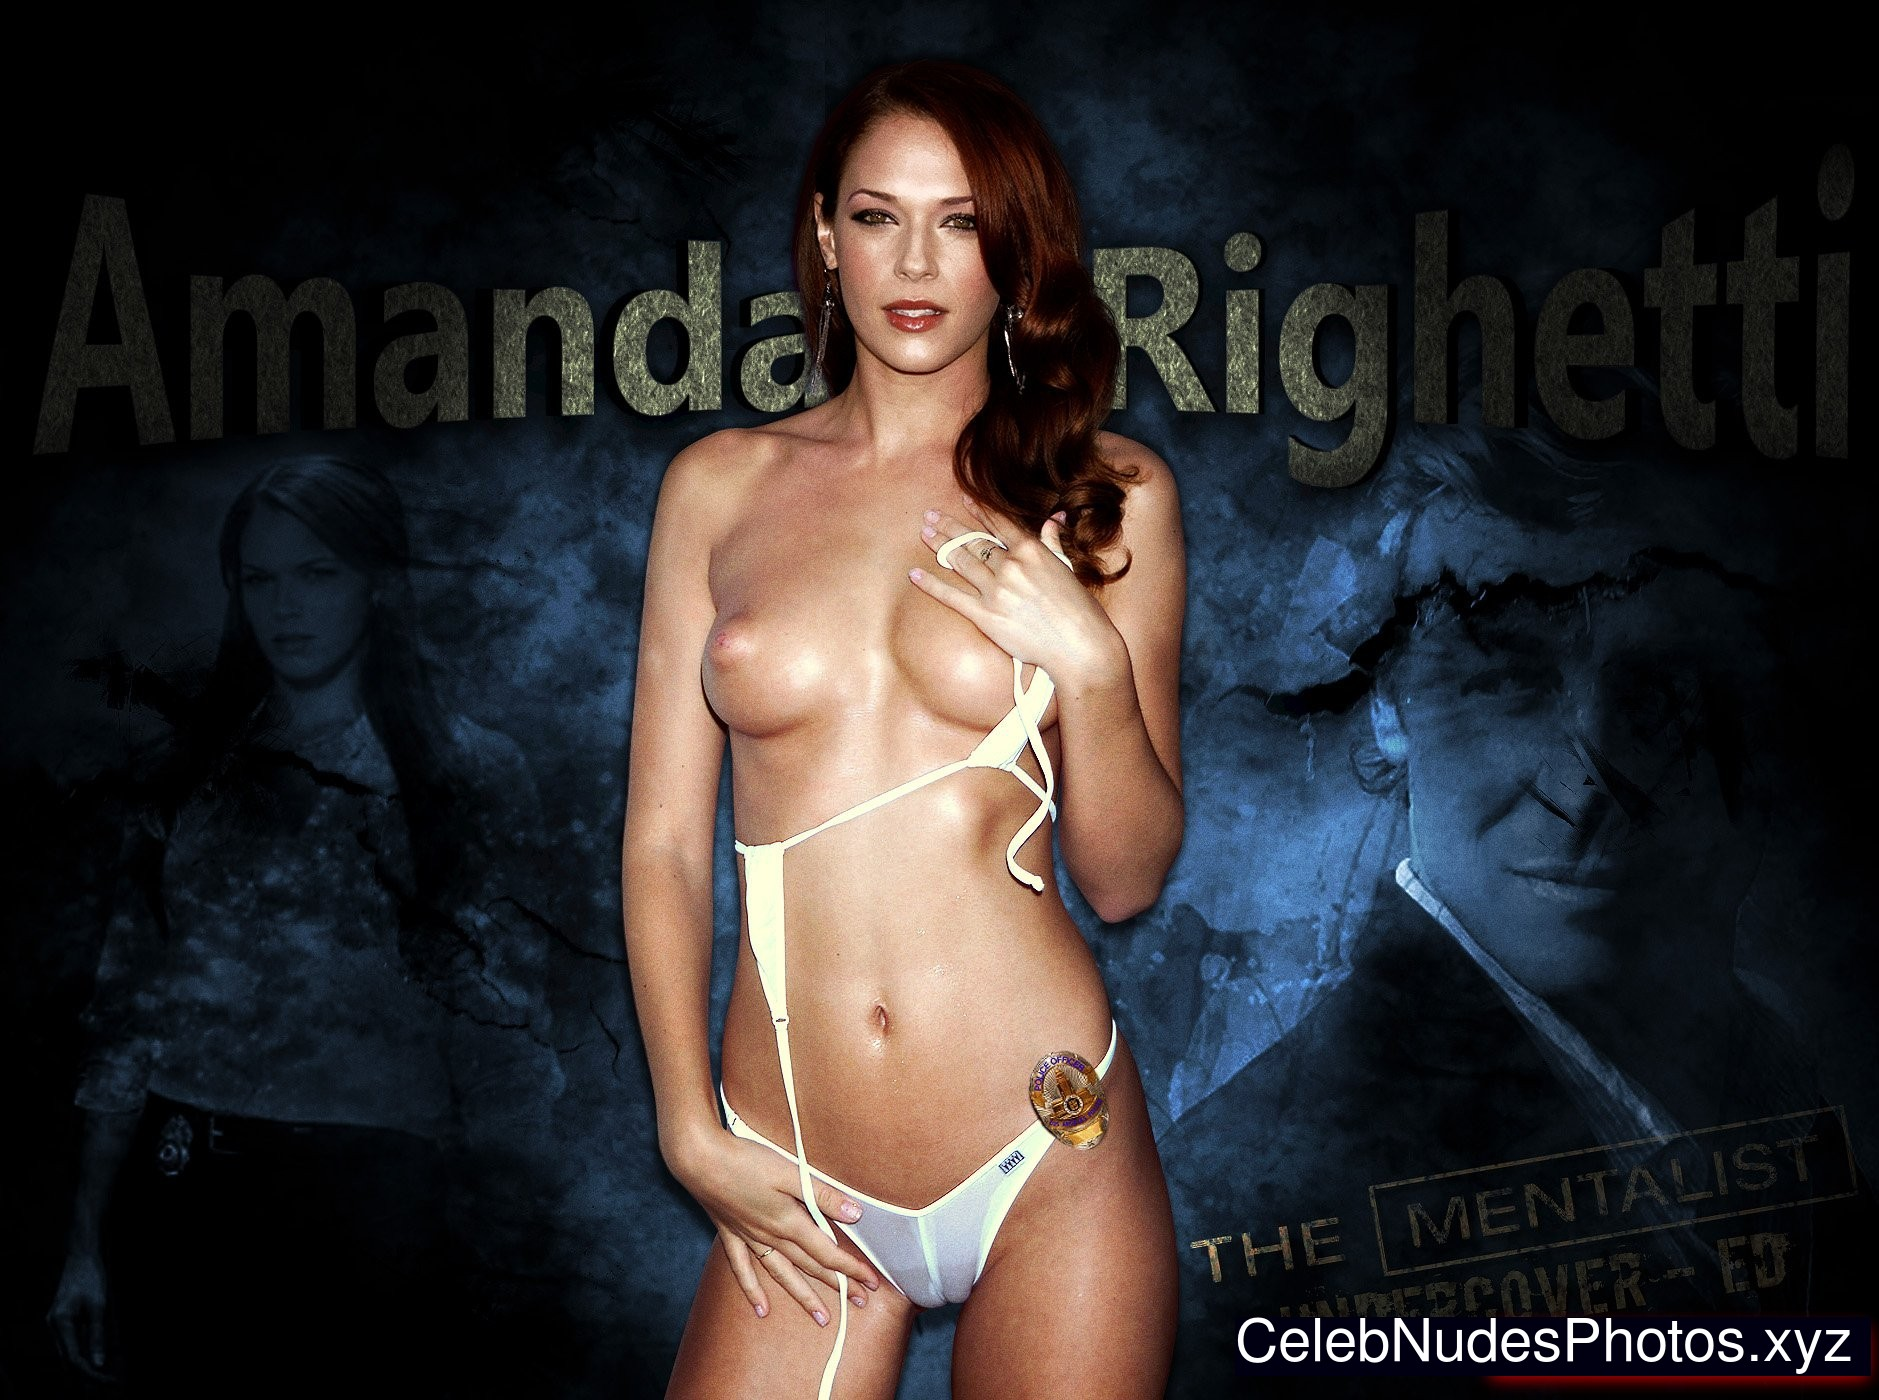 Amanda Righetti celebrities nude